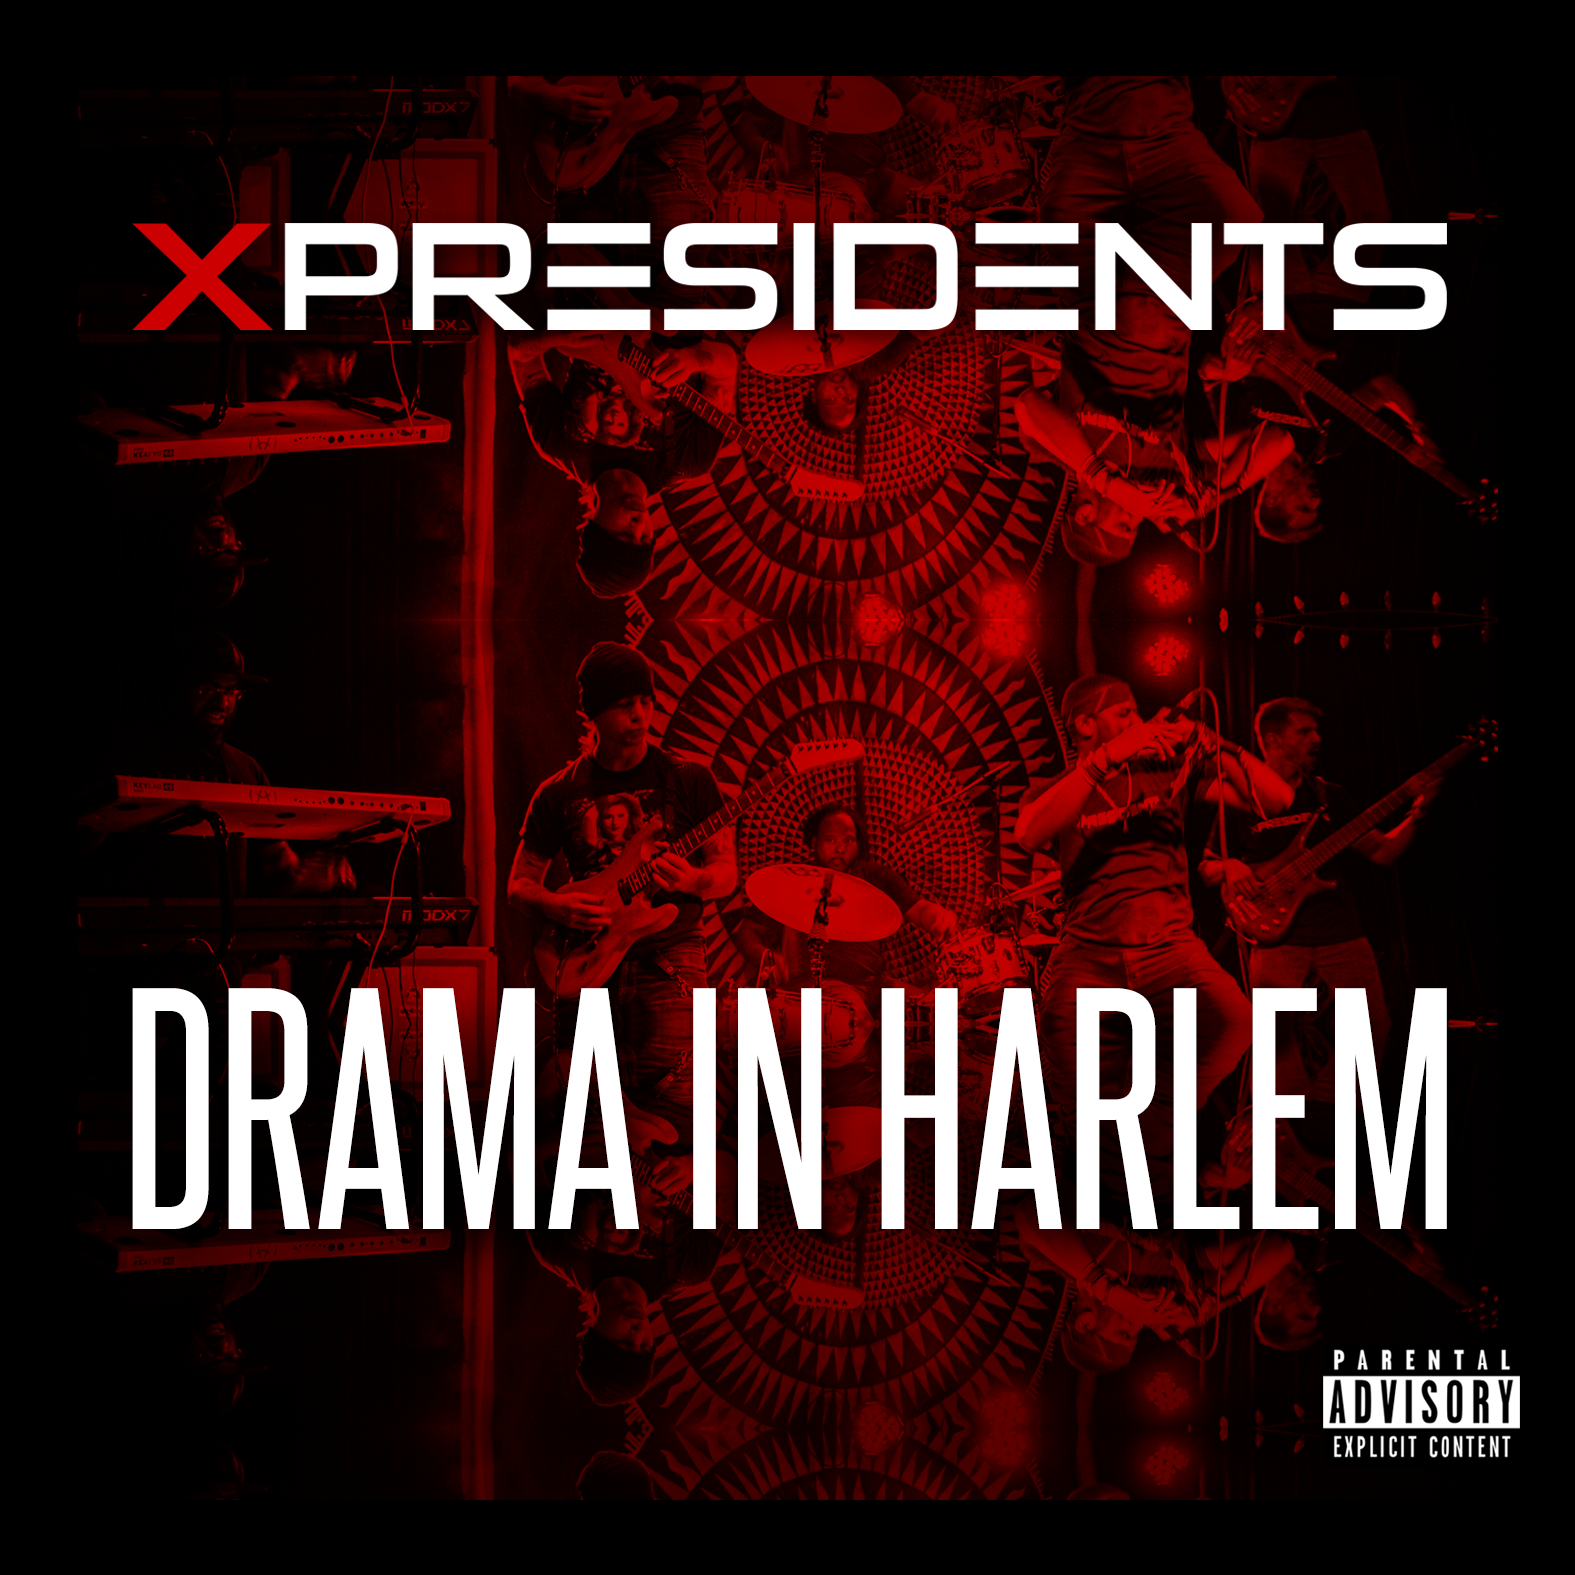 Drama in Harlem_COVER